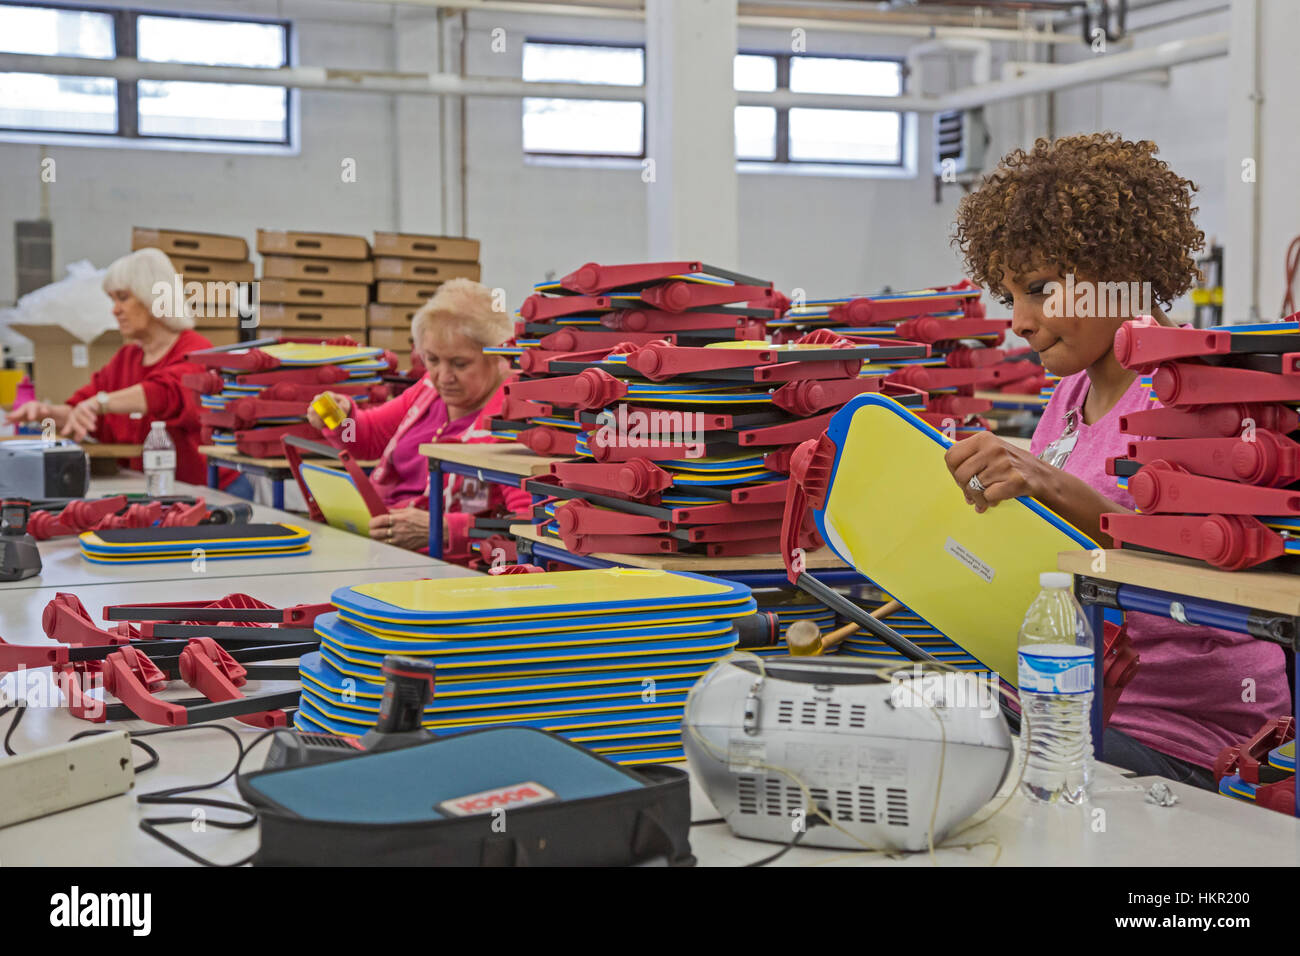 Louisville, Kentucky - Workers assemble educational aids for the blind at the American Printing House for the Blind. - Stock Image